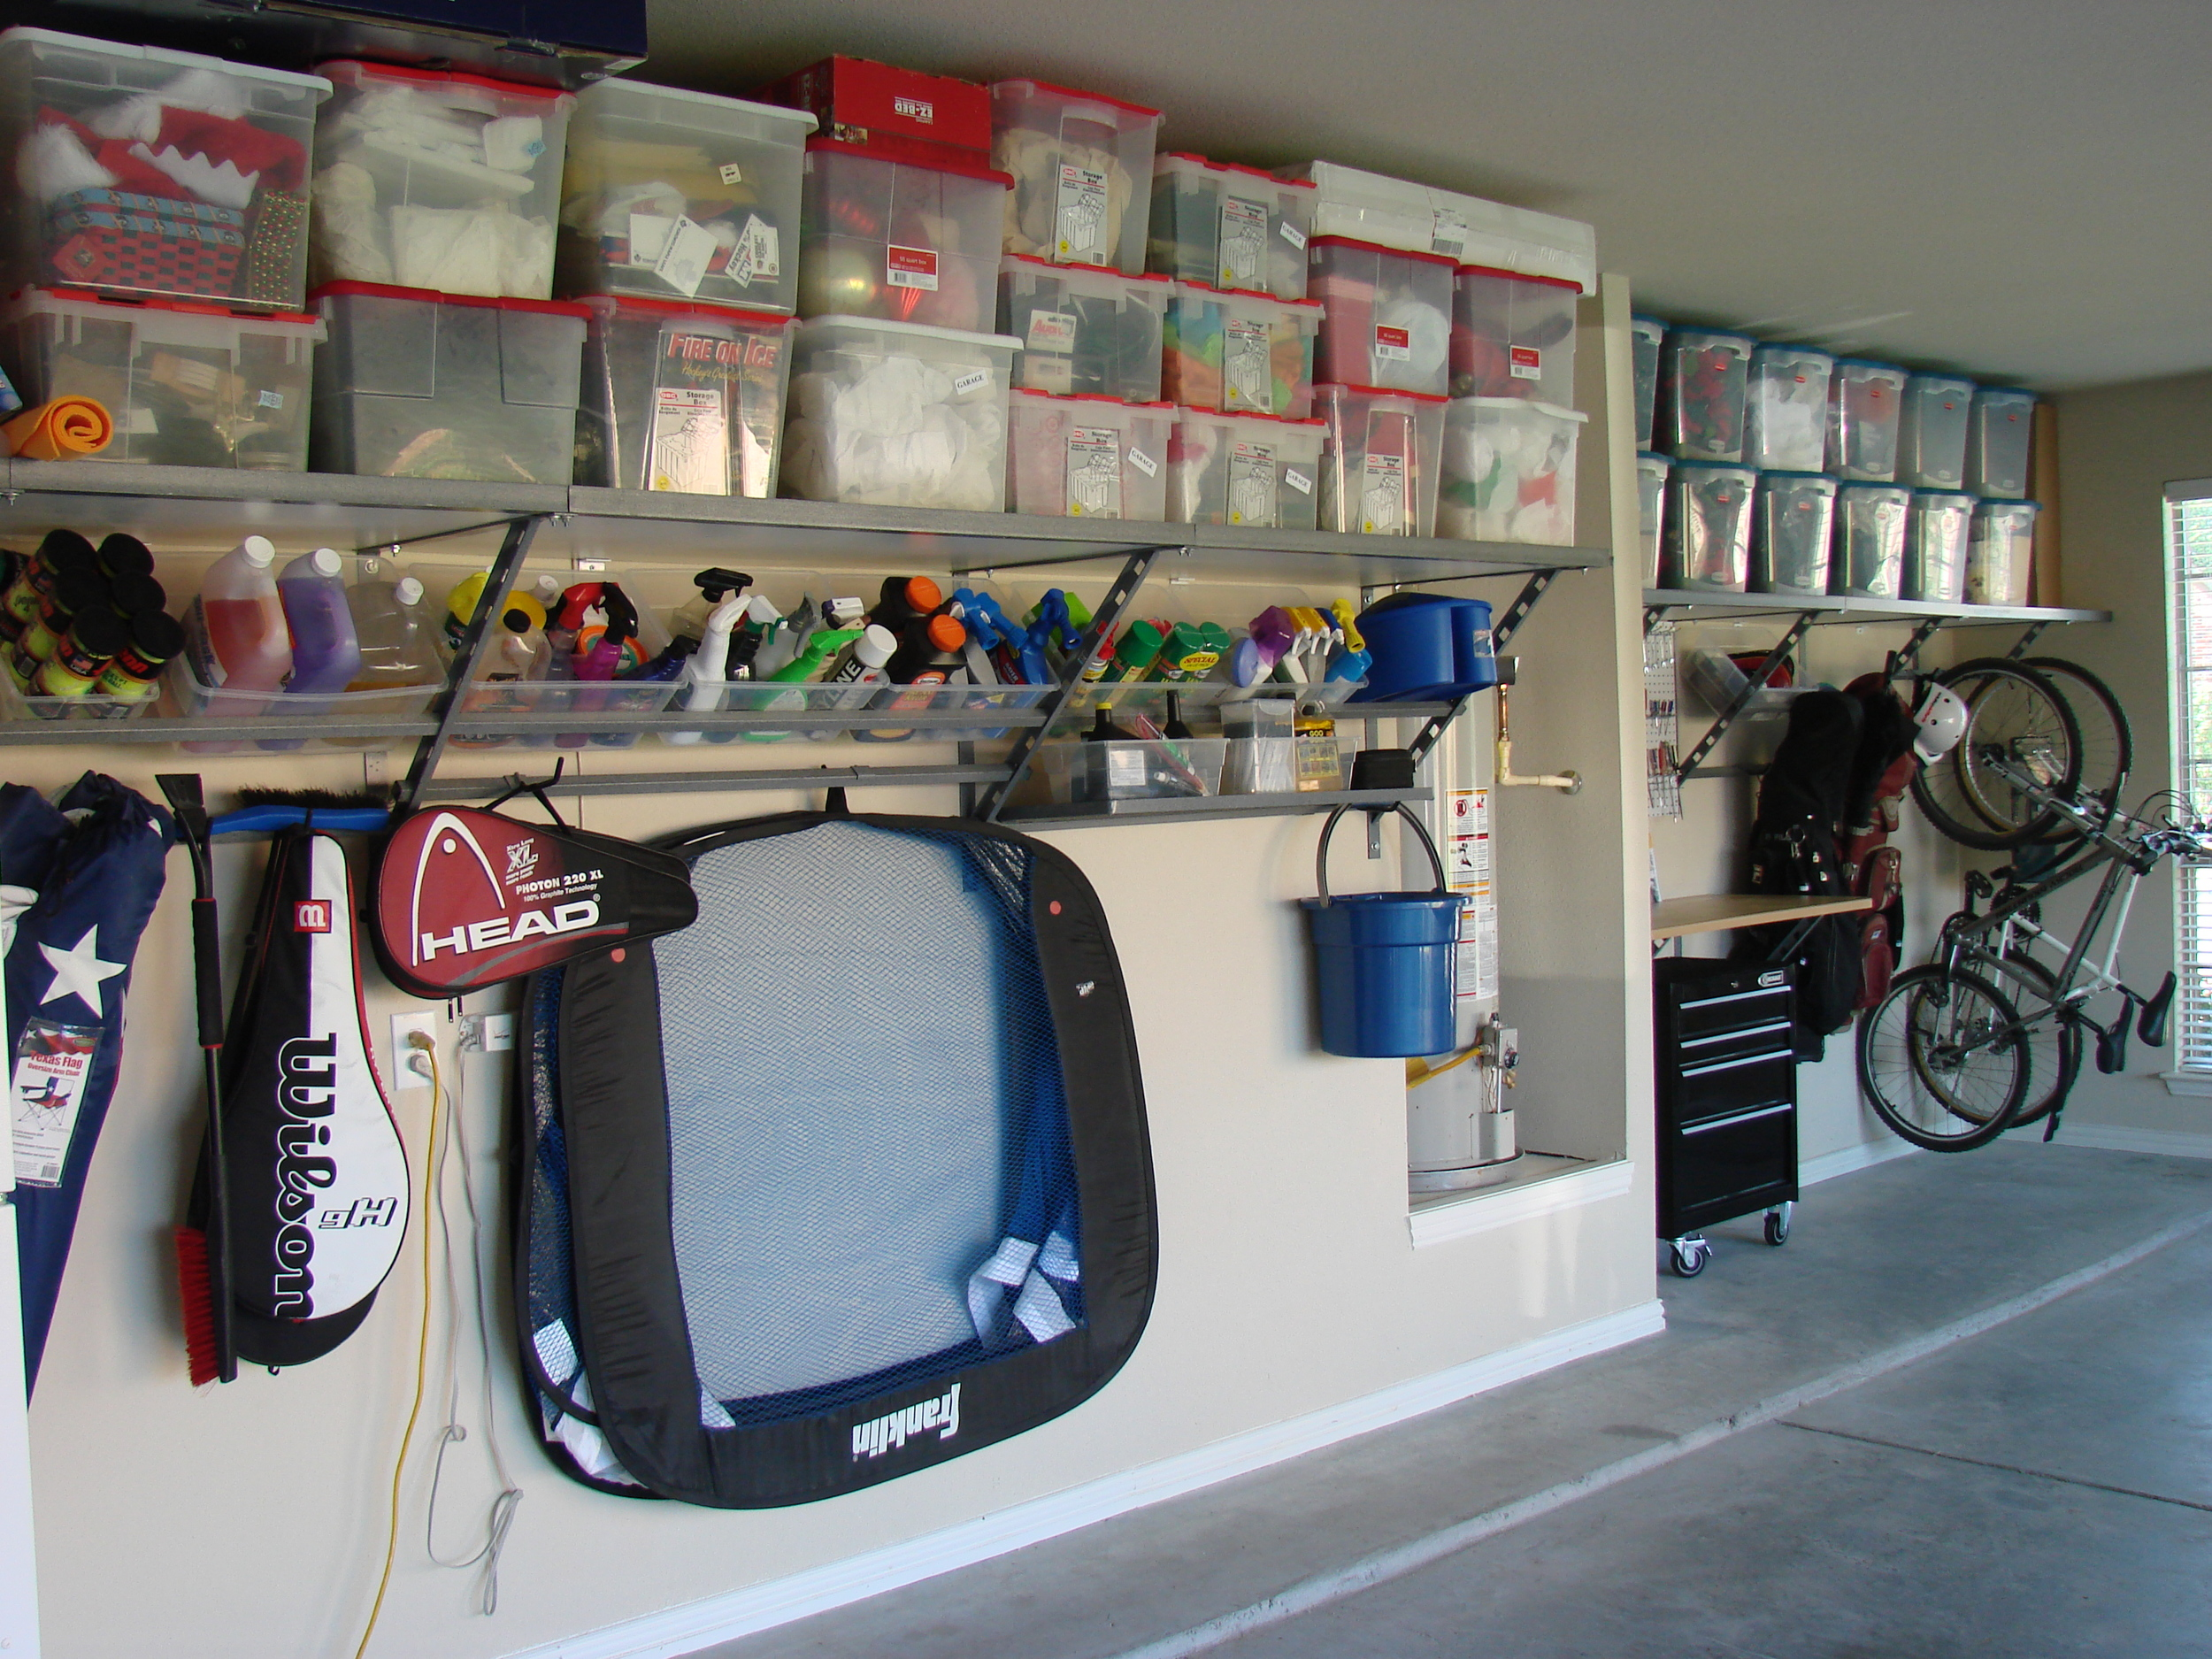 inspiration-storage-amazing-wall-mount-garage-organization-ideas-with-floating-rack-garage-storage-for-space-saving-garage-ideas-garage-ideas-storage-fixtures-layouts-and-remodels.JPG